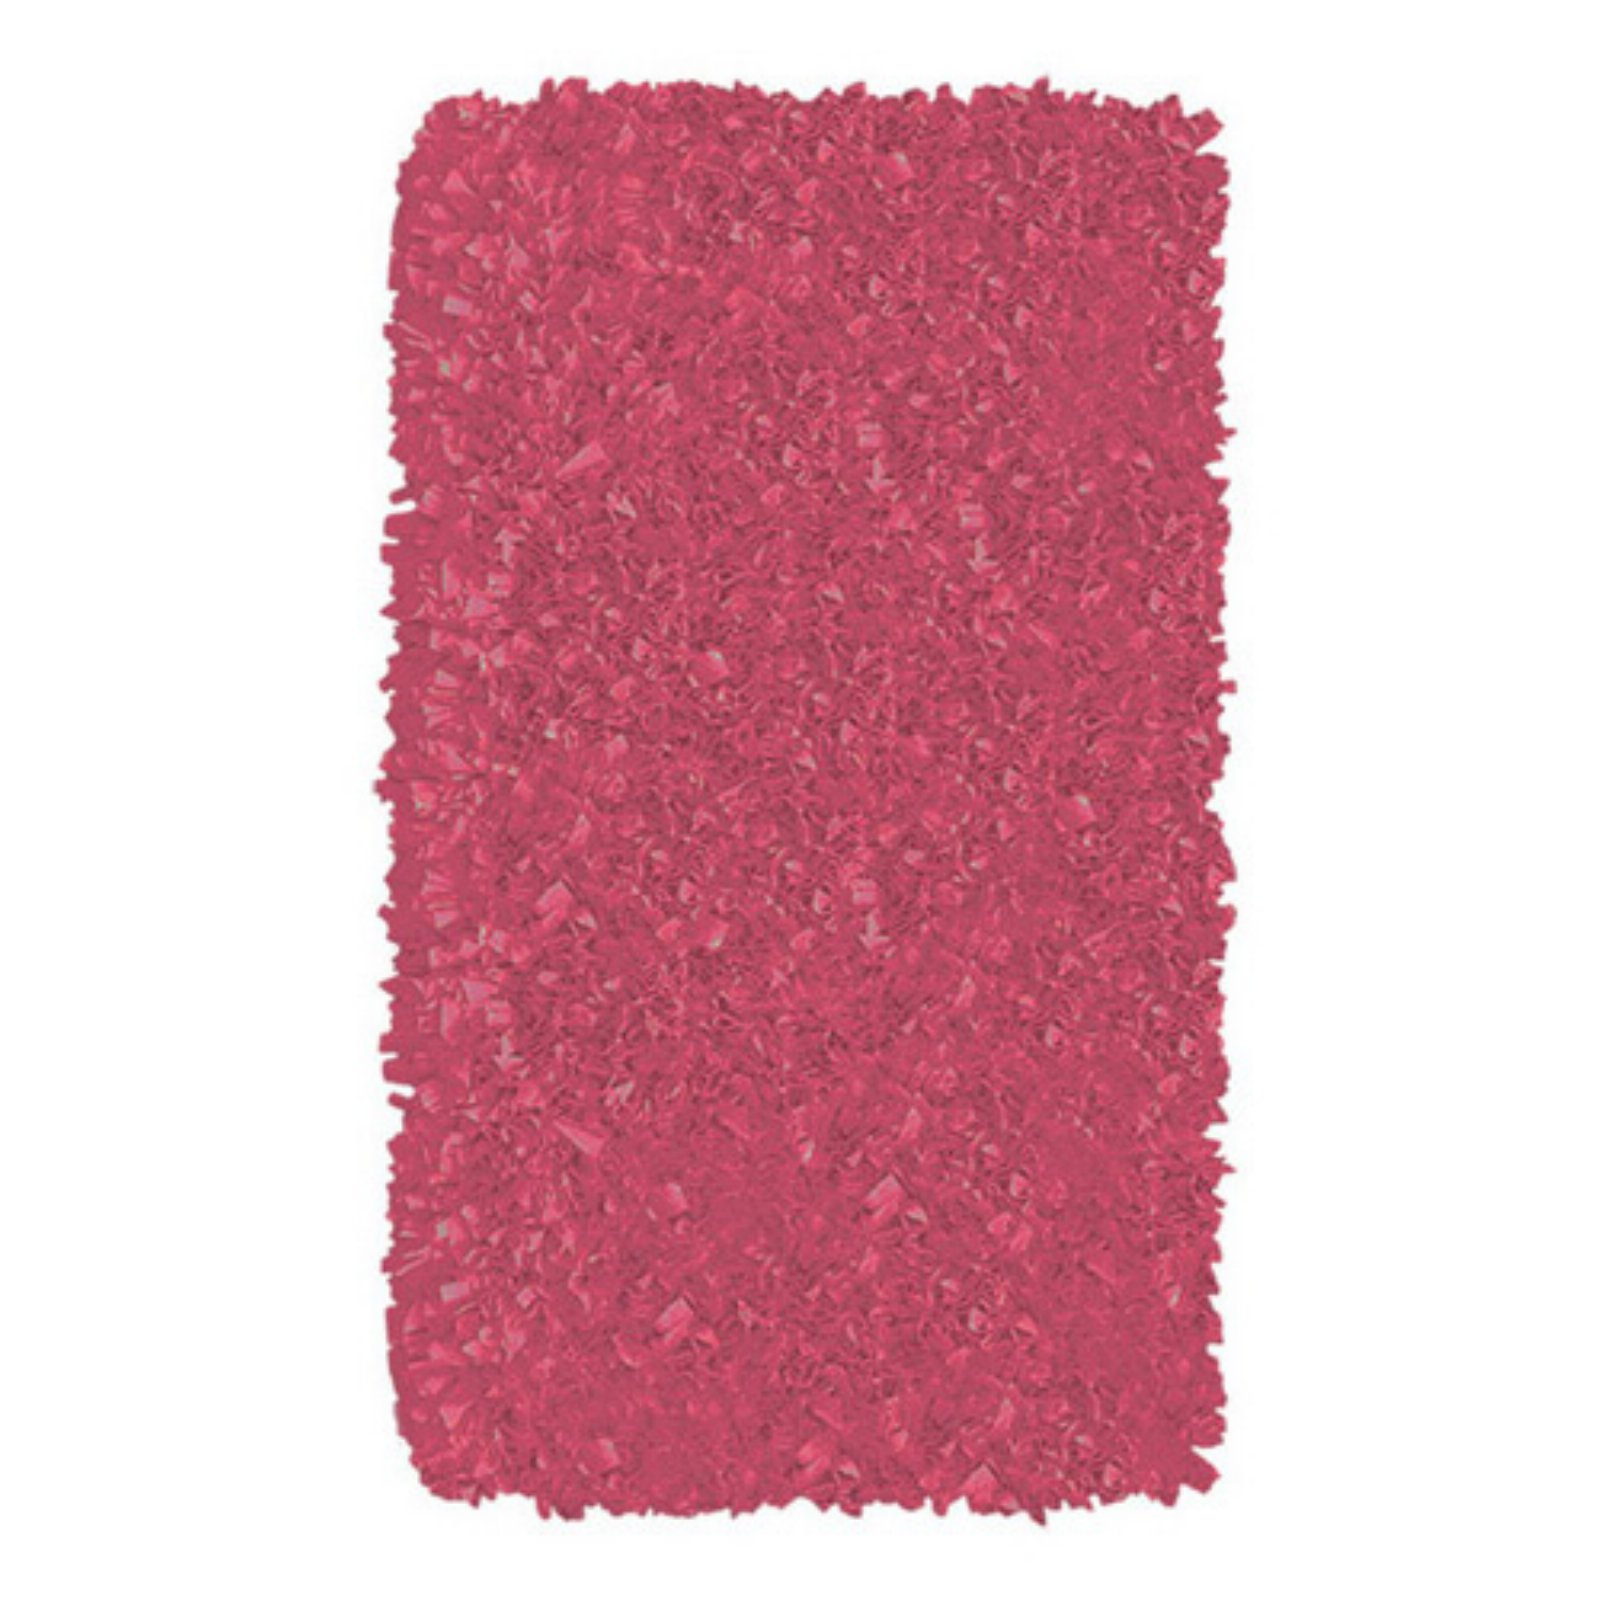 The Rug Market Shaggy Raggy Raspberry Size 2.8' x 4.8' Area Rug